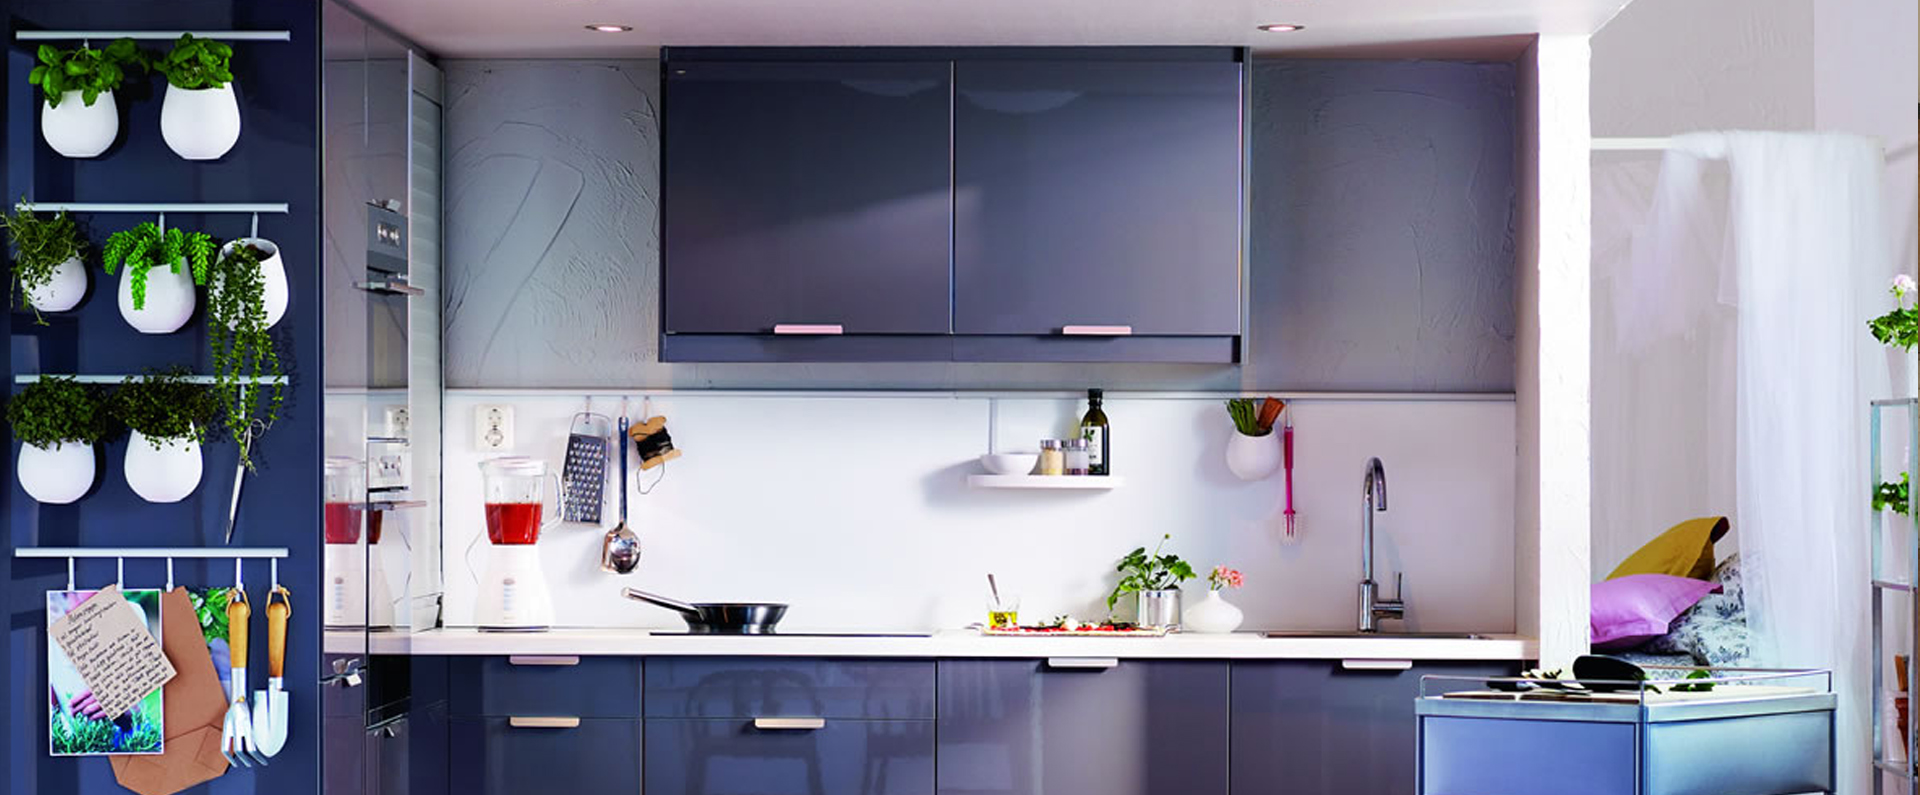 Kitchen Appliances Tips And Review